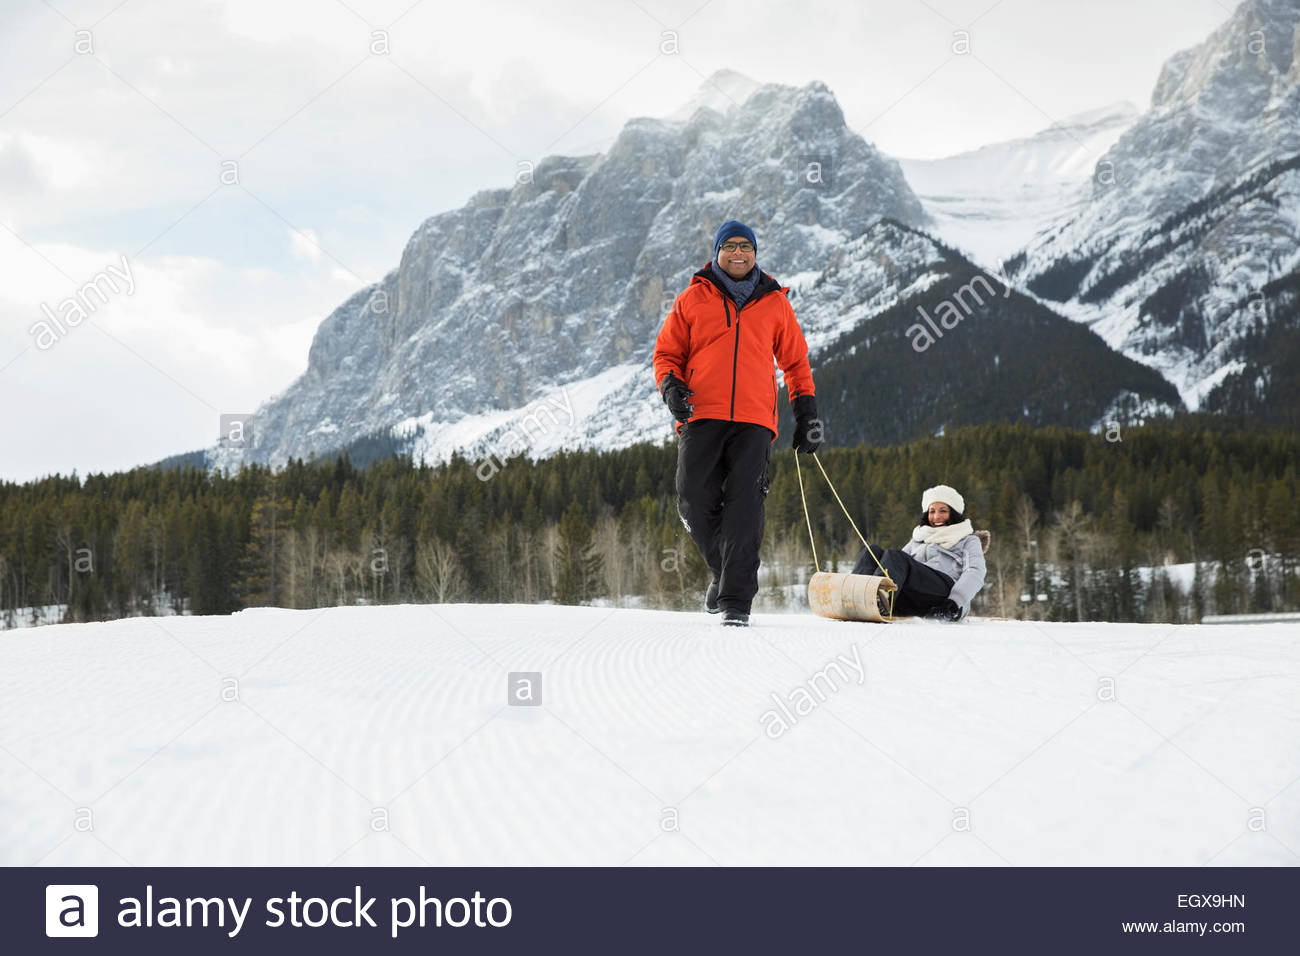 Husband pulling wife on sled in snowy field - Stock Image